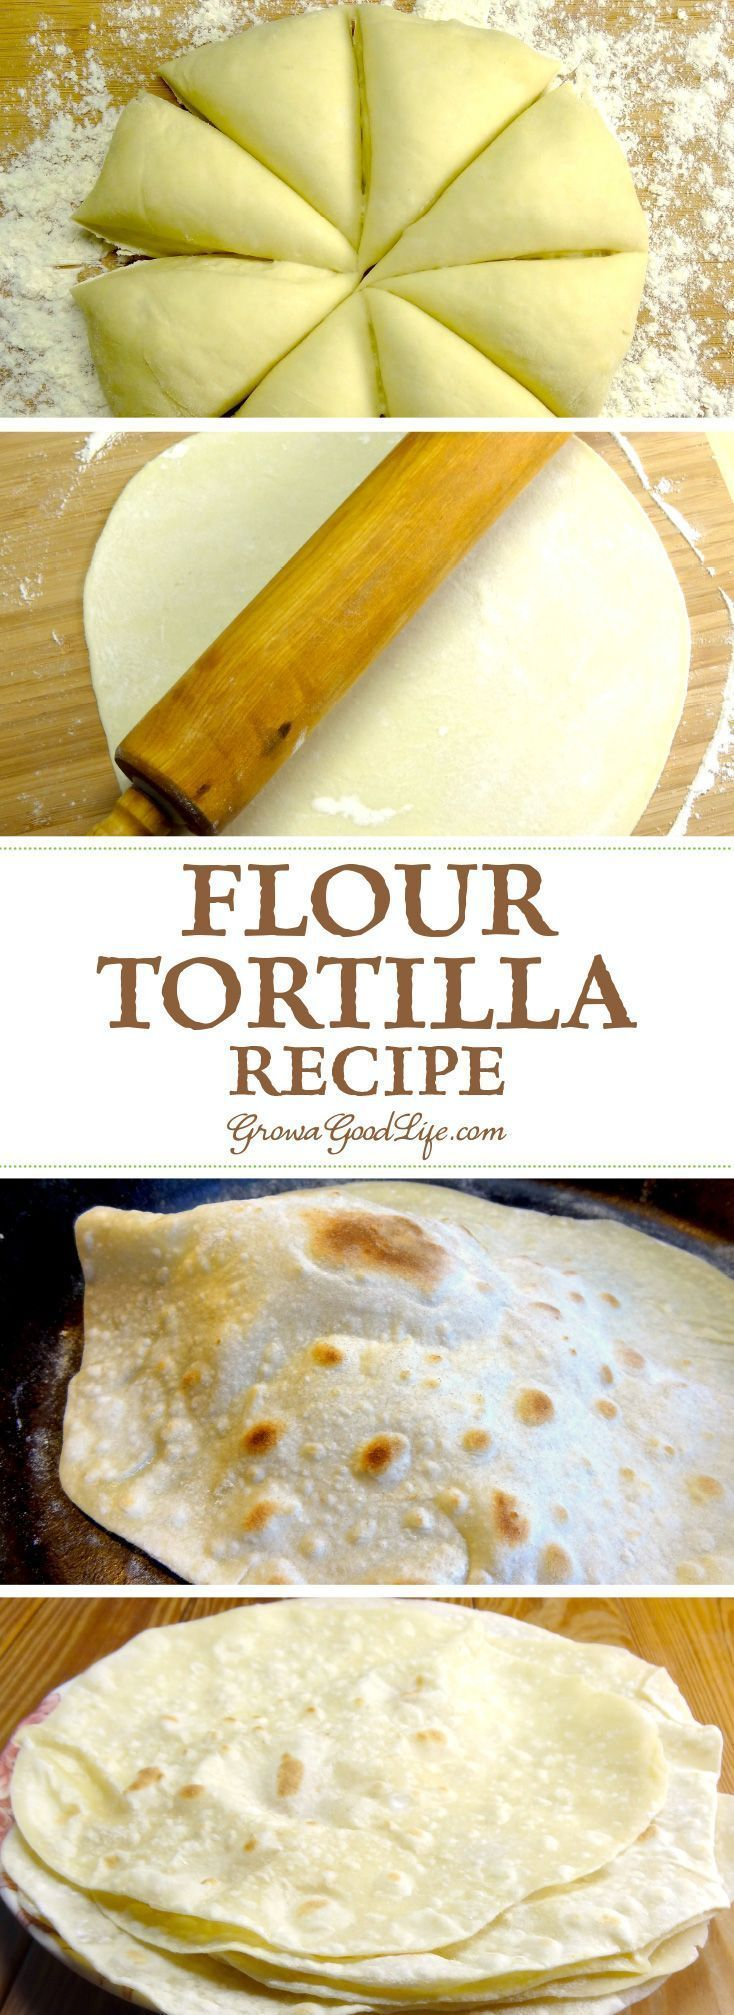 Only four basic ingredients are needed for this flour tortilla recipe. Making homemade tortillas is worth the extra effort because they taste so much better than store bought tortillas. Try this simple homemade flour tortilla recipe and you will know exactly what ingredients you and your family will be eating.